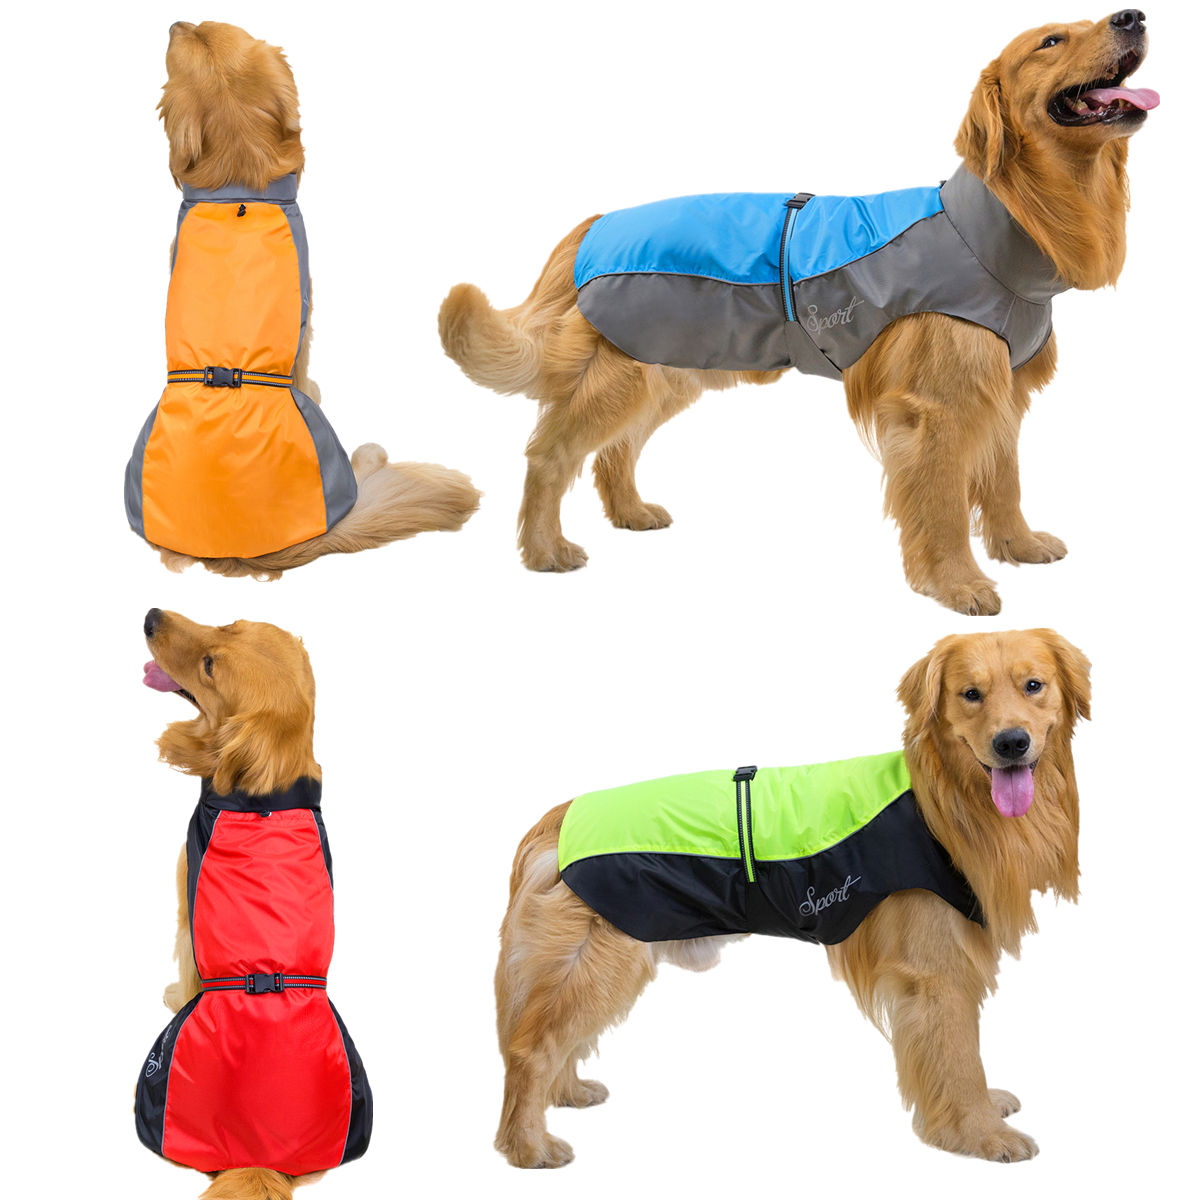 New Pet Dog Rain Coat Waterproof Jackets Breathable Assault Raincoat For Big Dogs Cats Apparel Clothes Pet Supplies 7XL 8XL 9XL